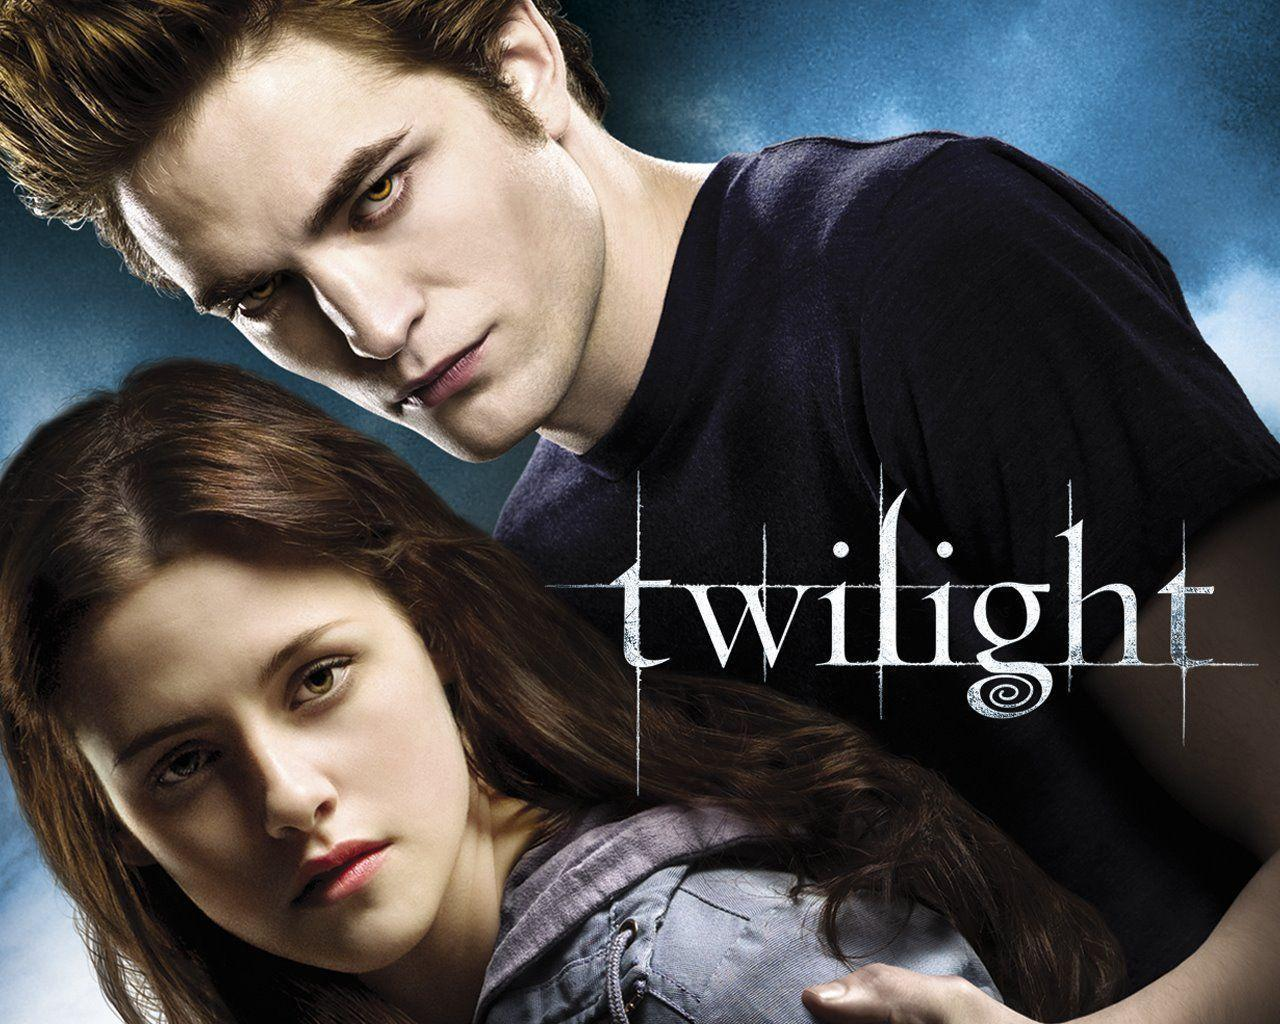 Free twilight wallpapers wallpaper cave twilight wallpapers free download bella swan edward cullen voltagebd Image collections